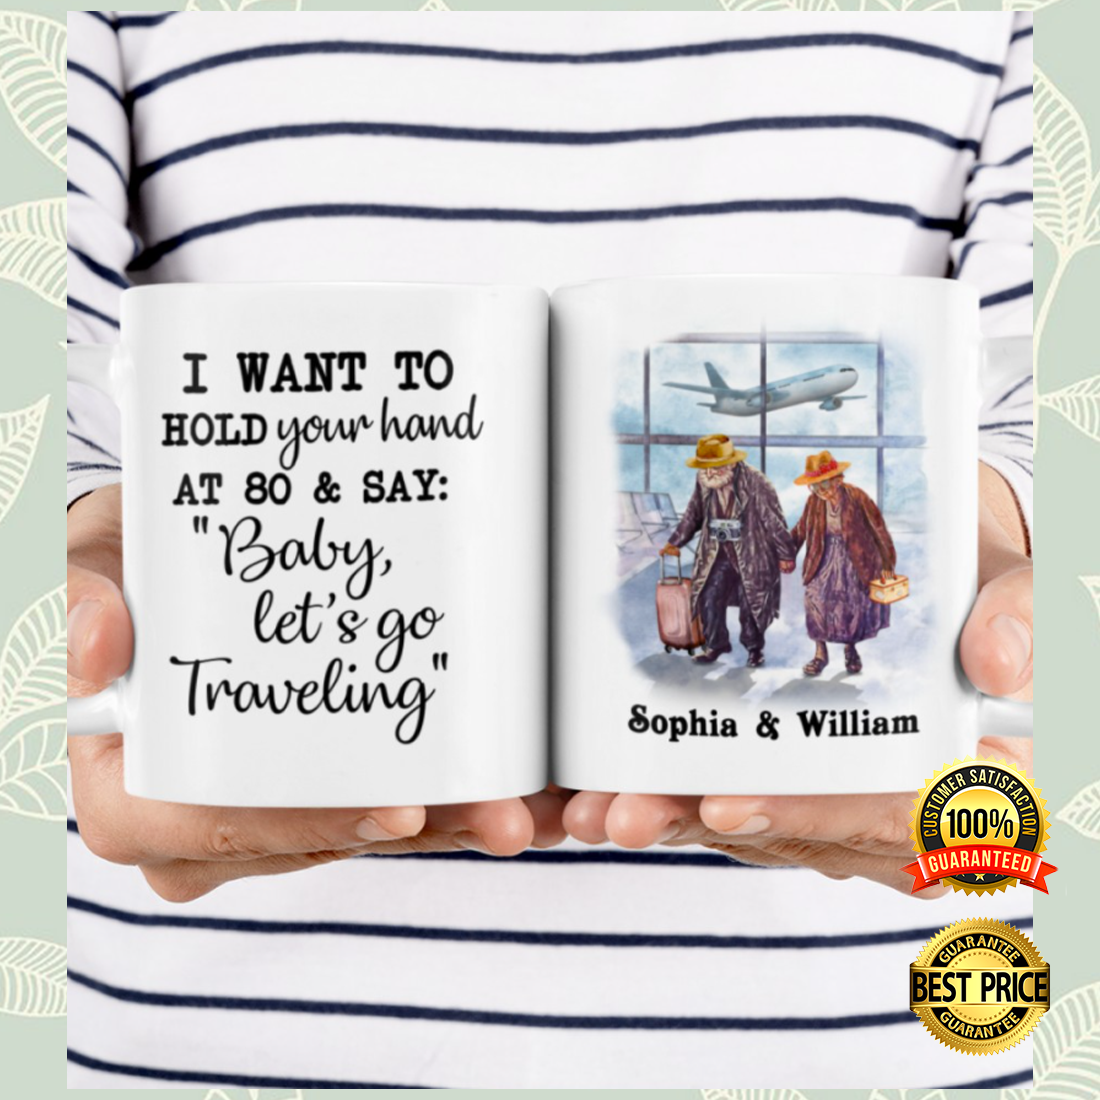 Personalized i want to hold your hand at 80 and say baby let's go traveling mug 3